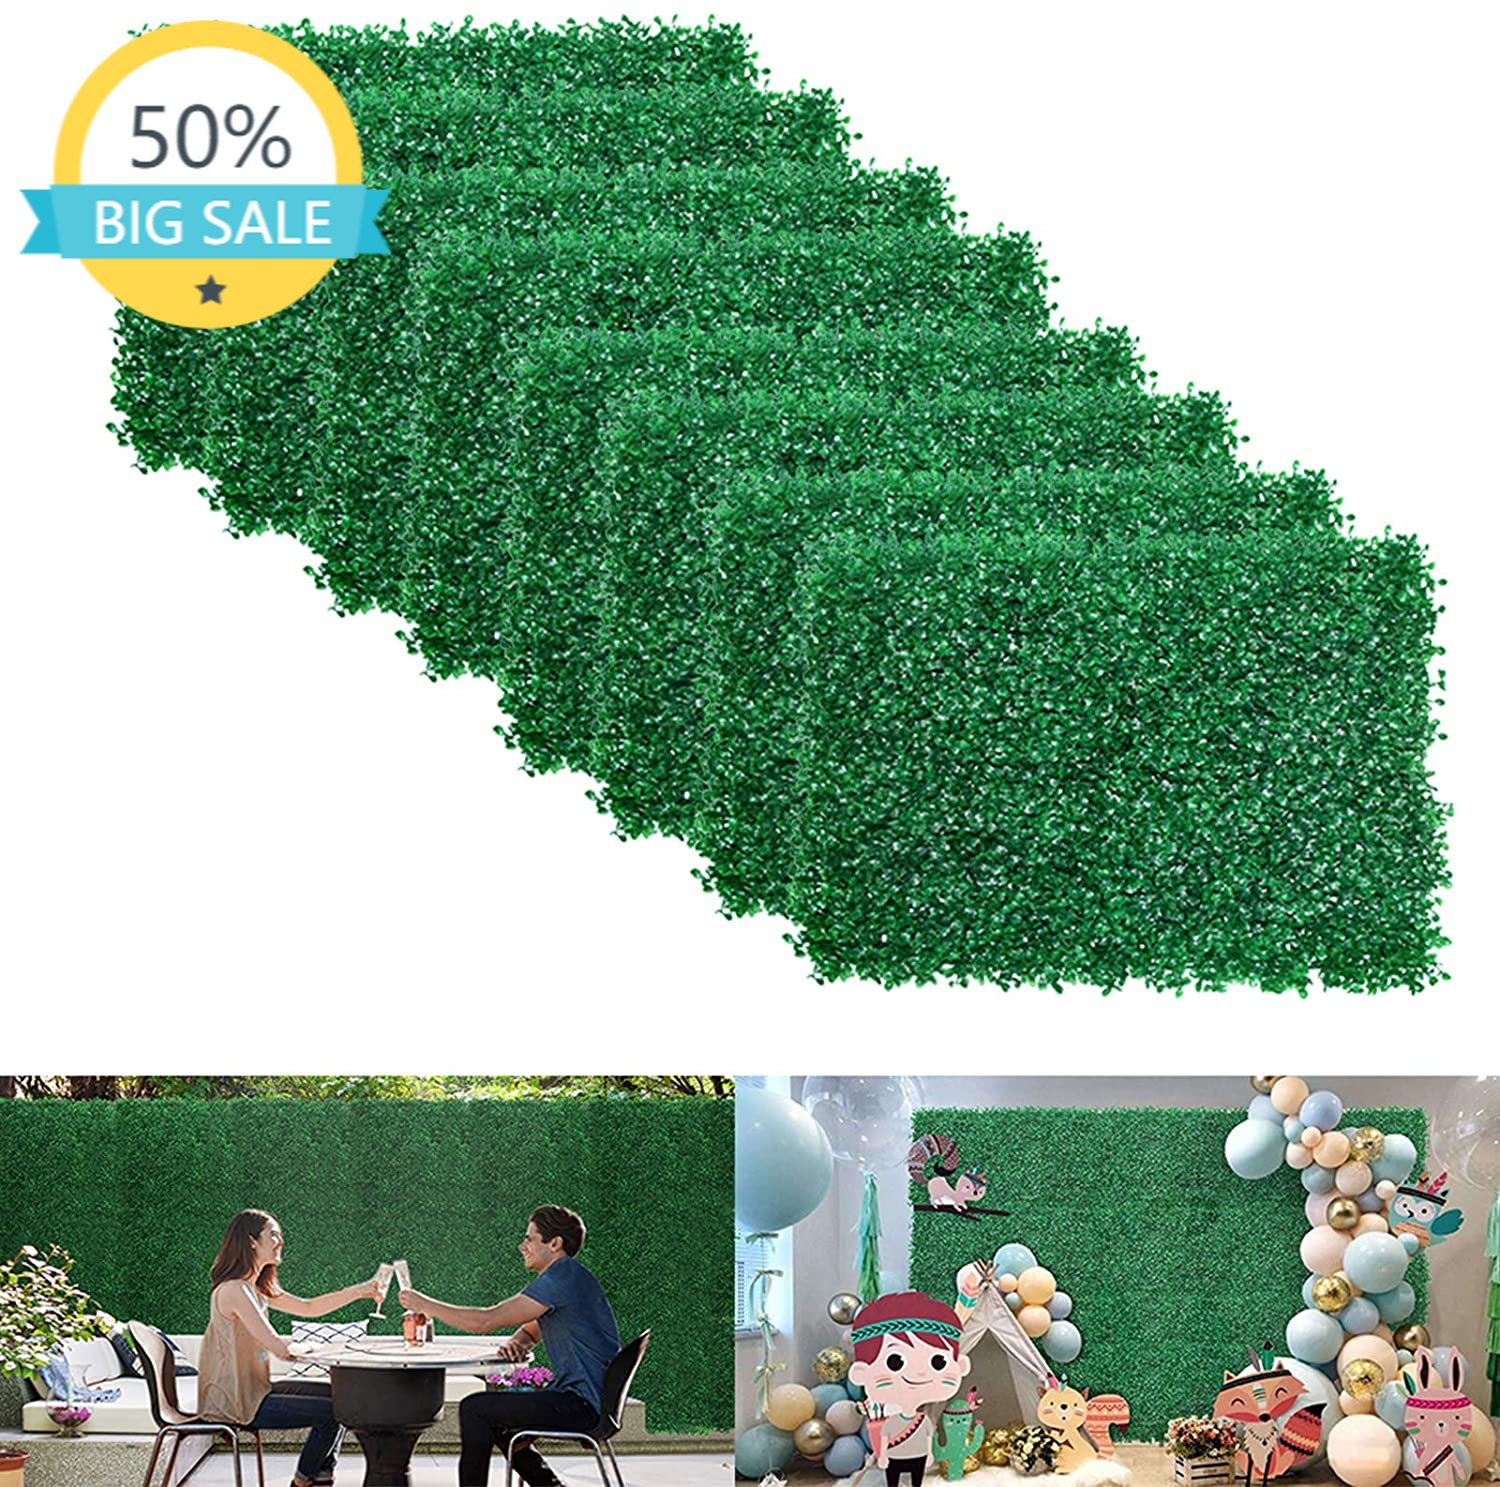 Artificial Boxwood Hedges Panels, Faux Grass Wall, Shrubs Bushes Backdrop, Garden Privacy Screen Fence Decoration, Pack of 24pcs